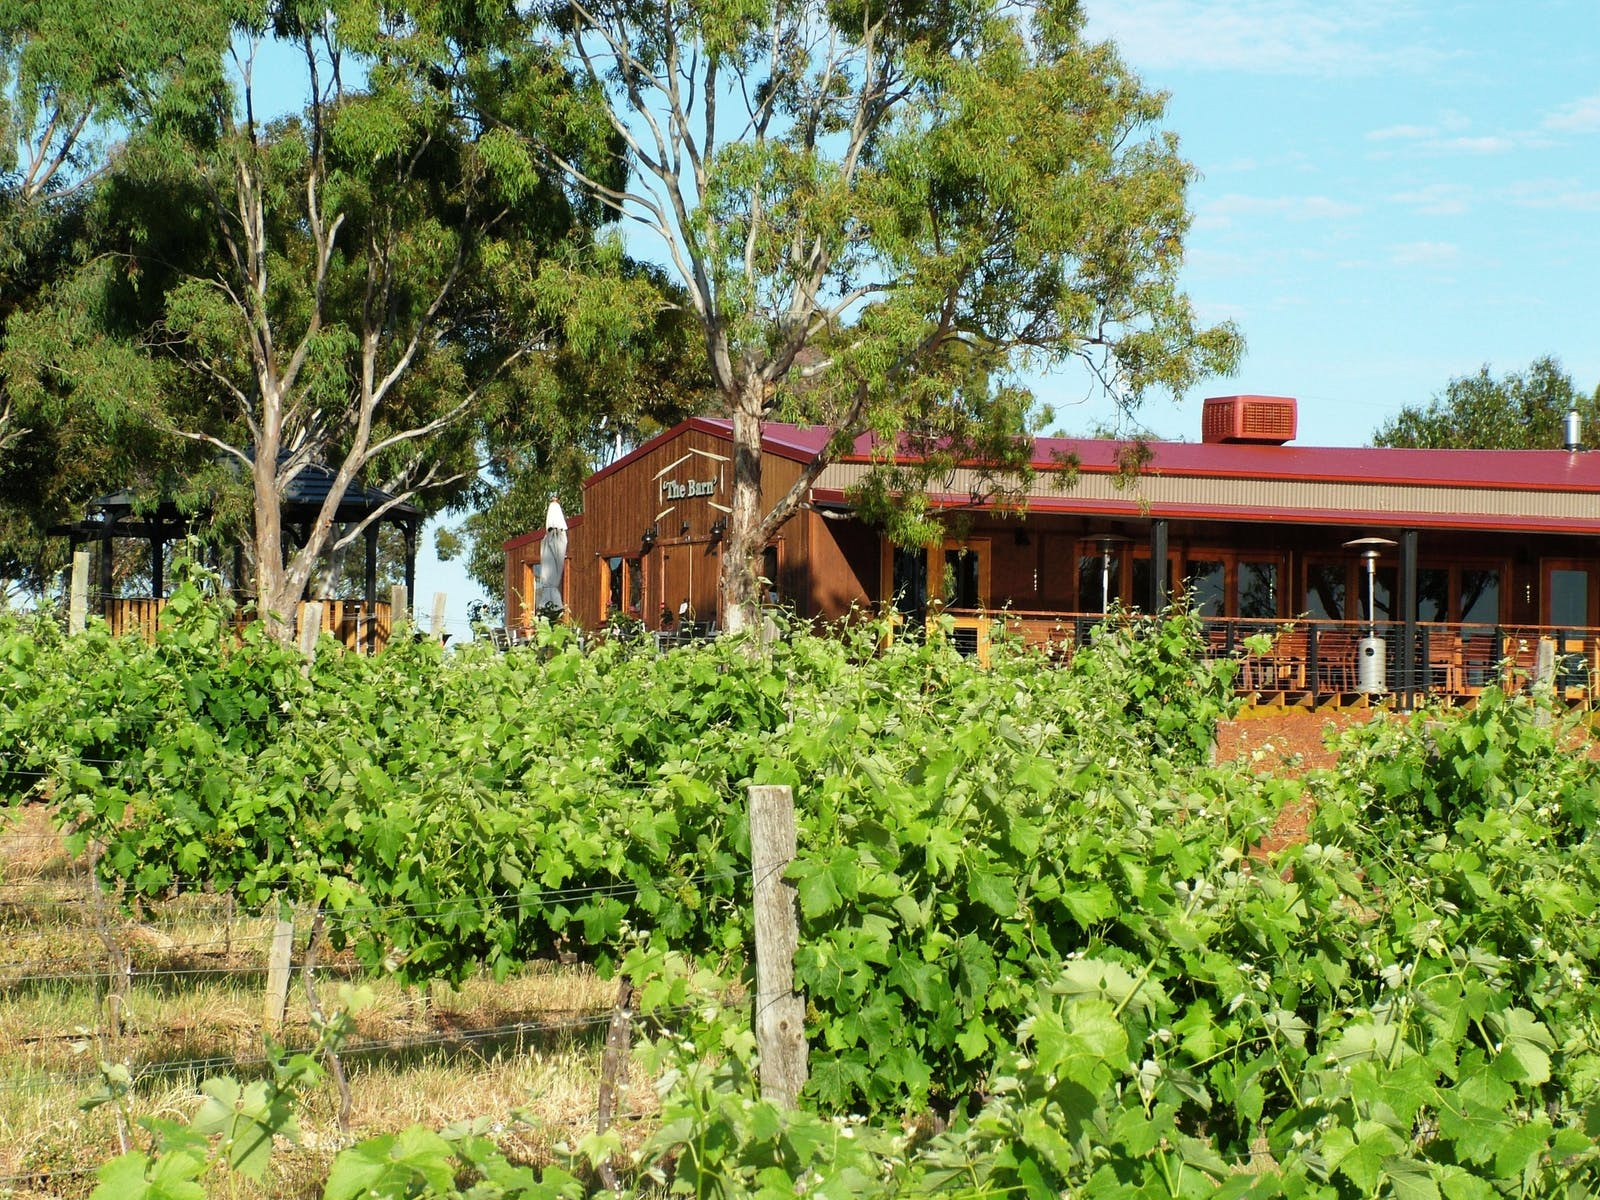 The Barn cellar door and function centre